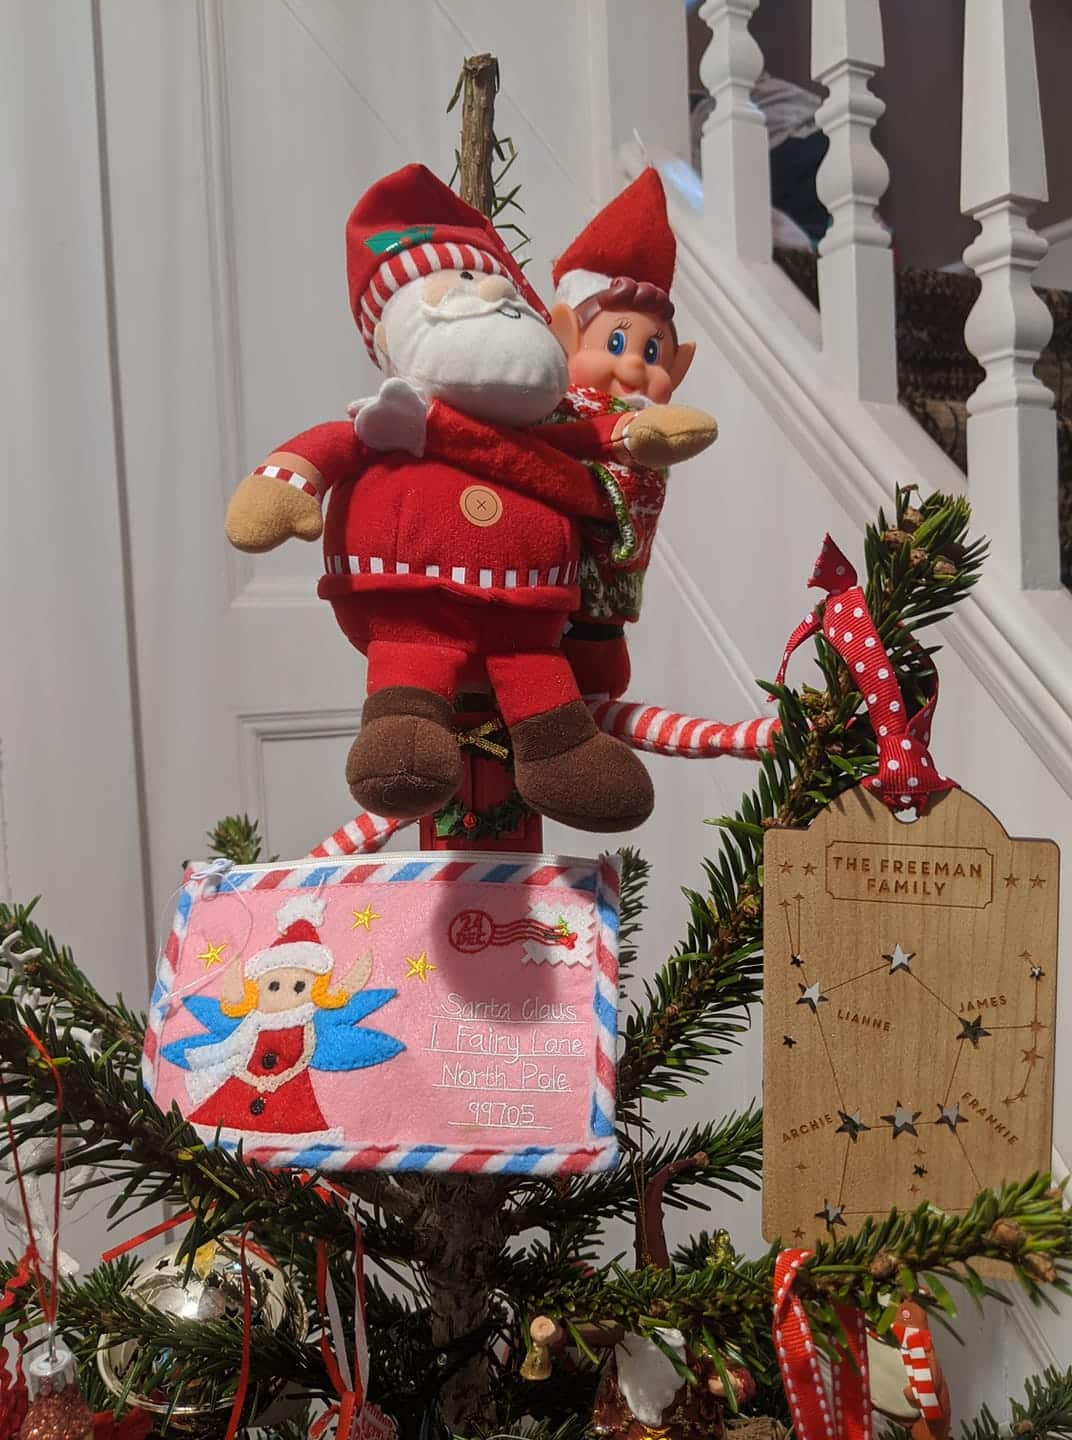 Santa kidnapped by the Elf on the Shelf